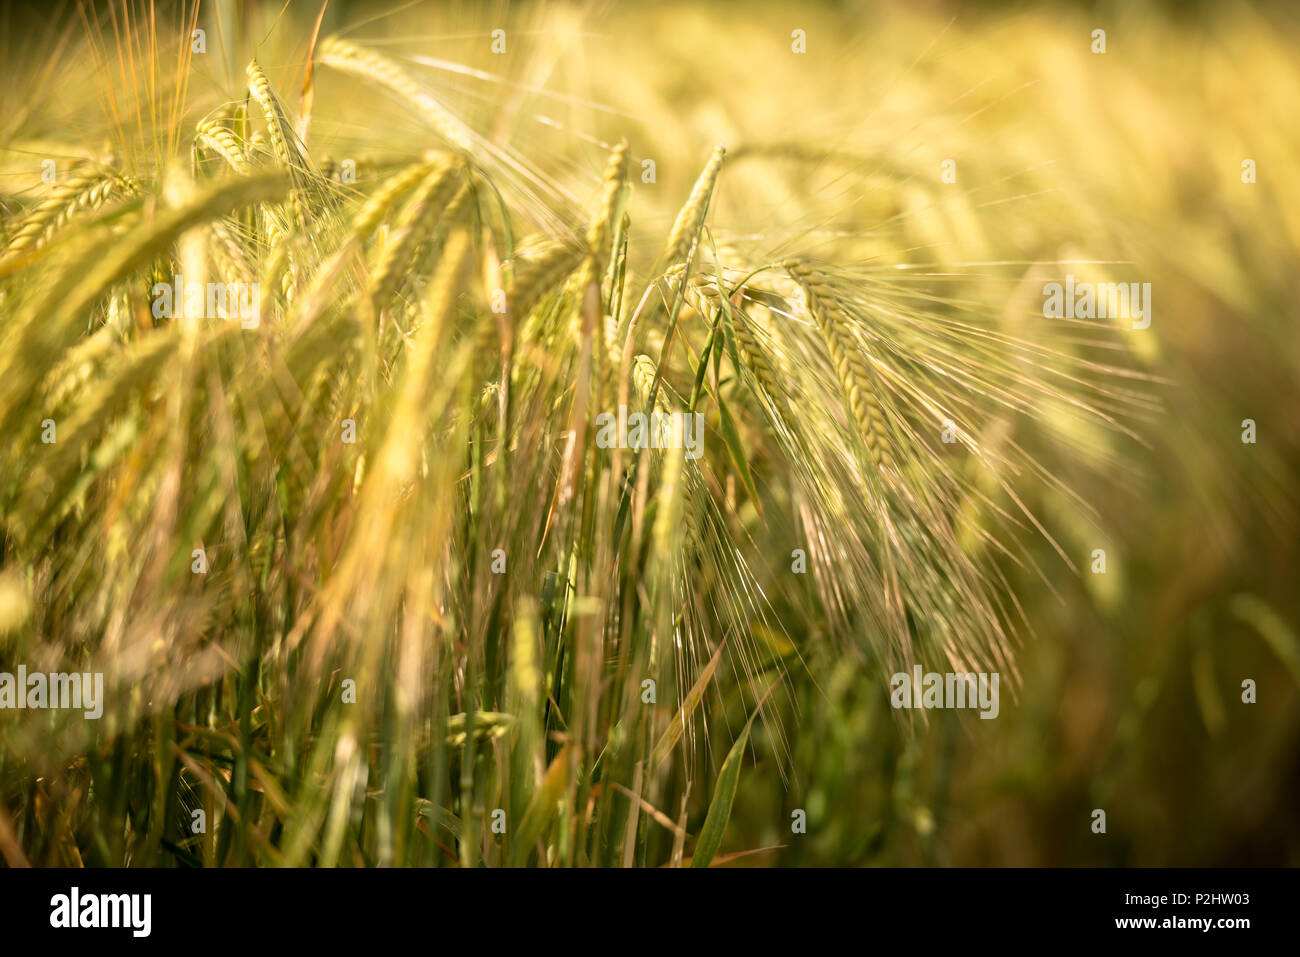 Detail of a ear of corn in a wheat field, Swabian Alb, Zwiefalten, Swabian Alb, Baden-Wuerttemberg, Germany - Stock Image